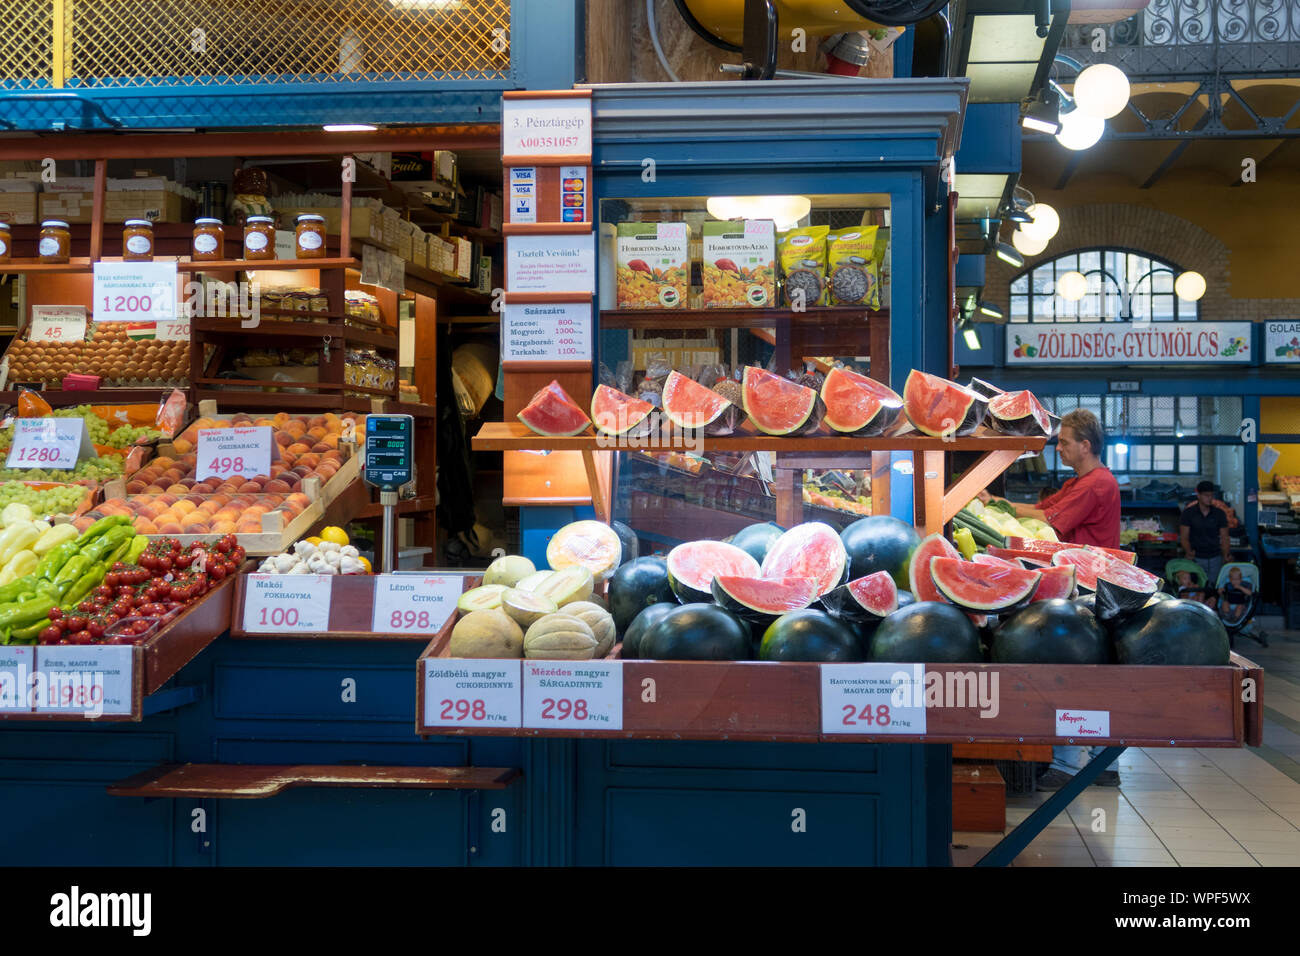 Budapest, Hungary - Aug 16, 2019: Colourful fruit stall with melons and fruits in the covered Central Market Hall in Budapest, Hungary Stock Photo